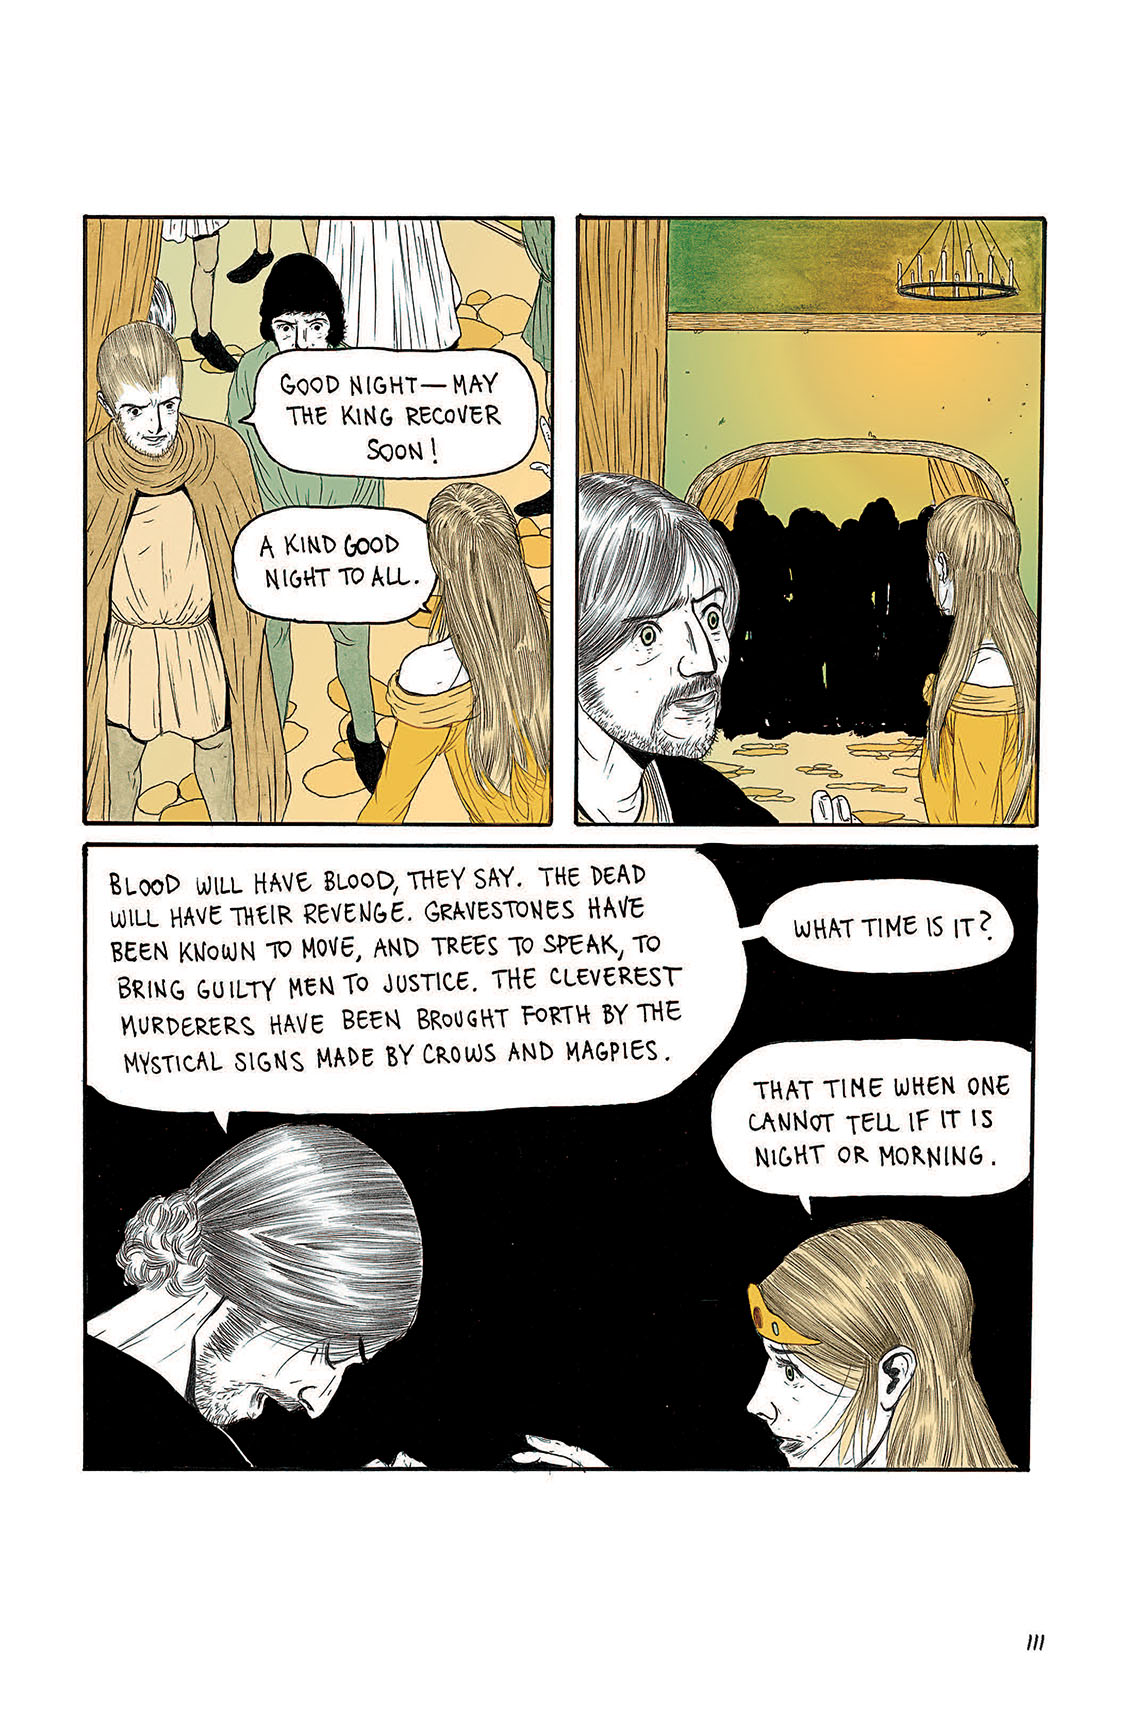 Macbeth Act 3 Scene 4 Page 111 Graphic Novel Sparknotes Sparknote 6